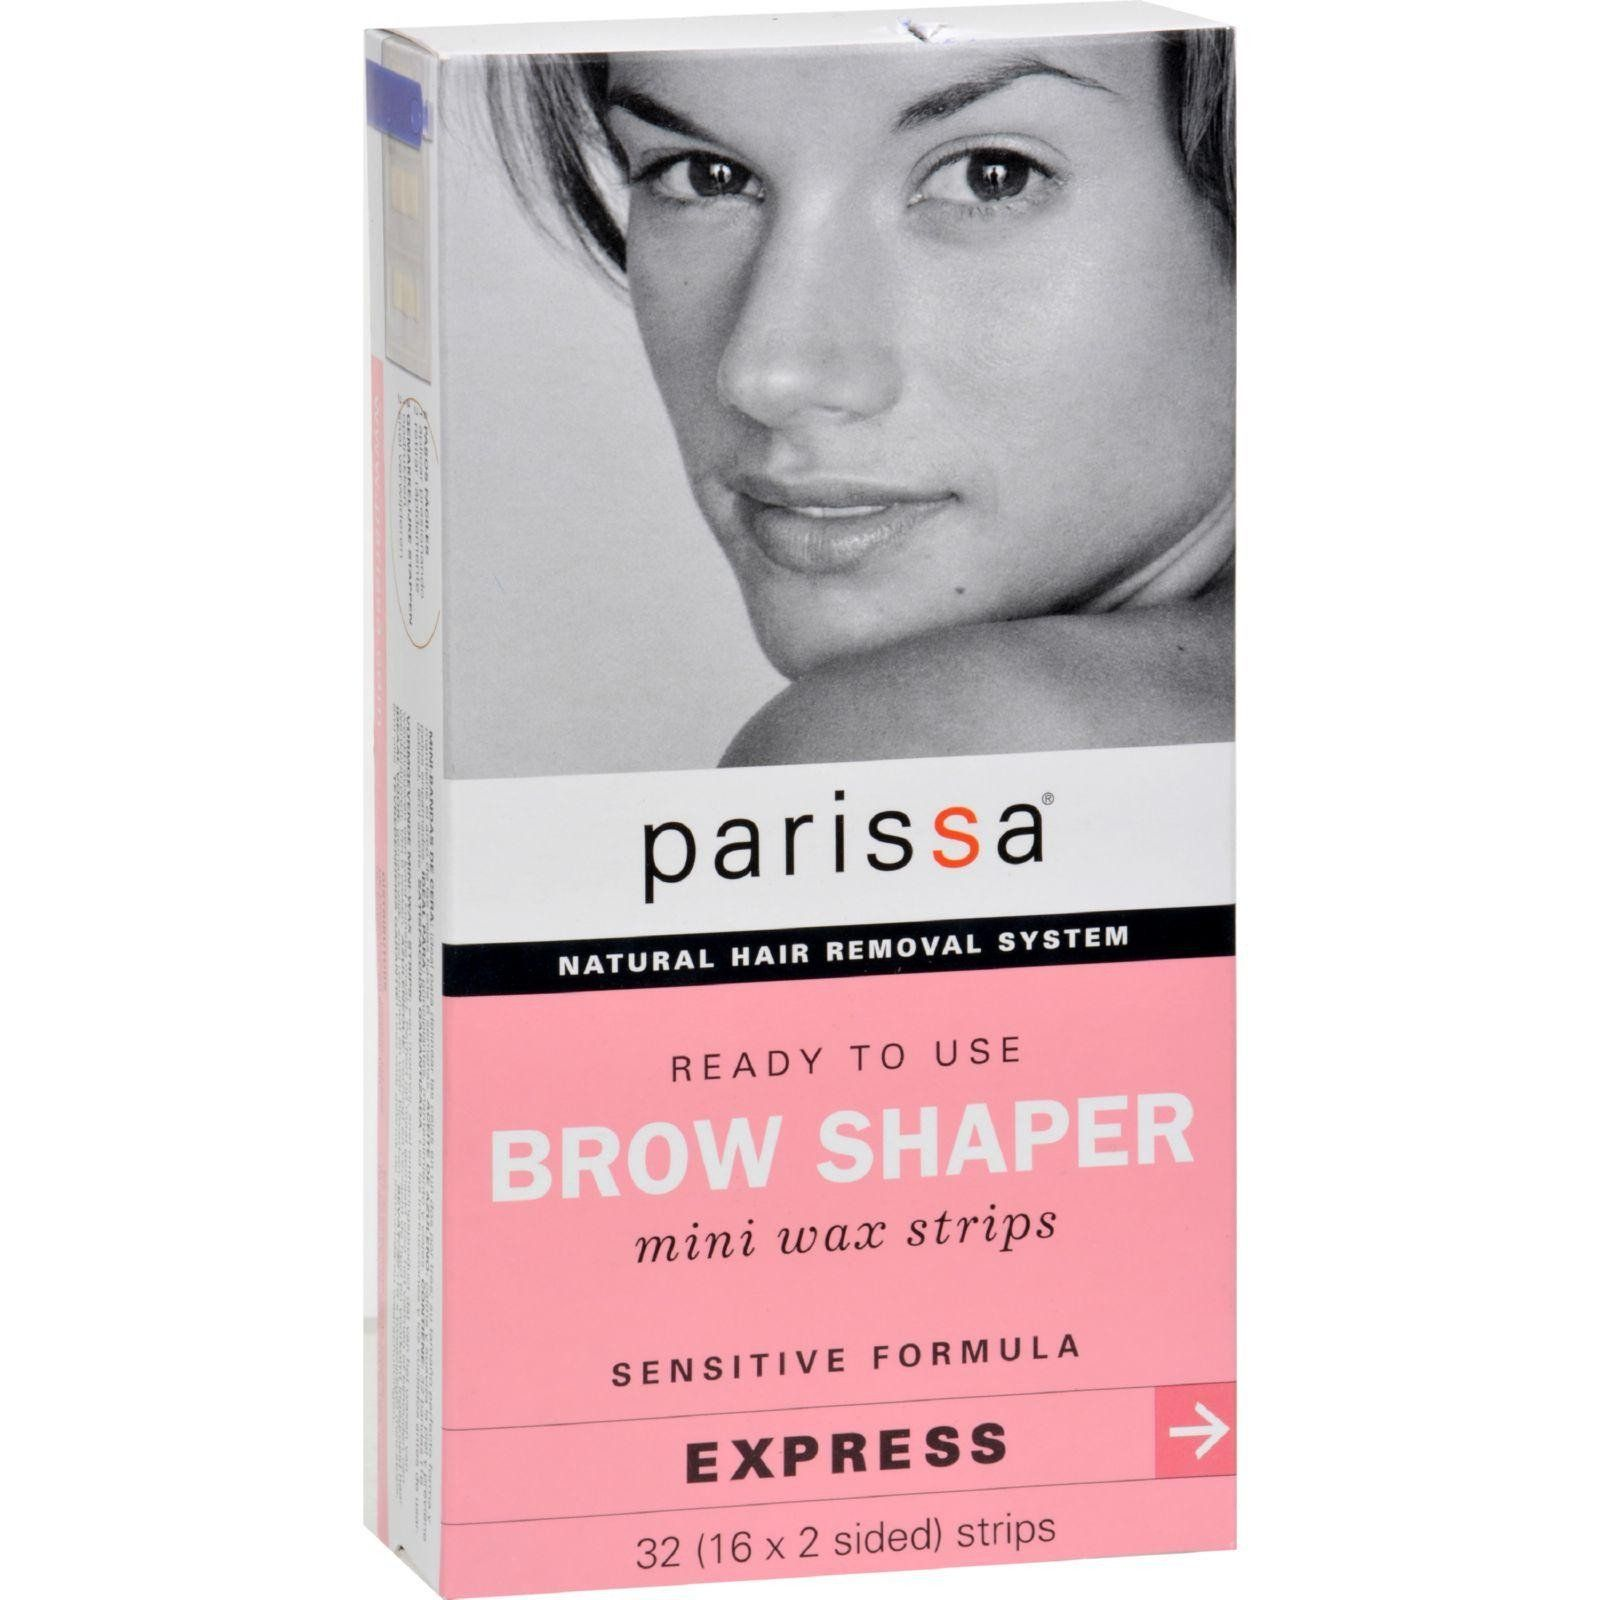 Parissa Natural Hair Removal System Brow Shaper 32 Strips Waxing